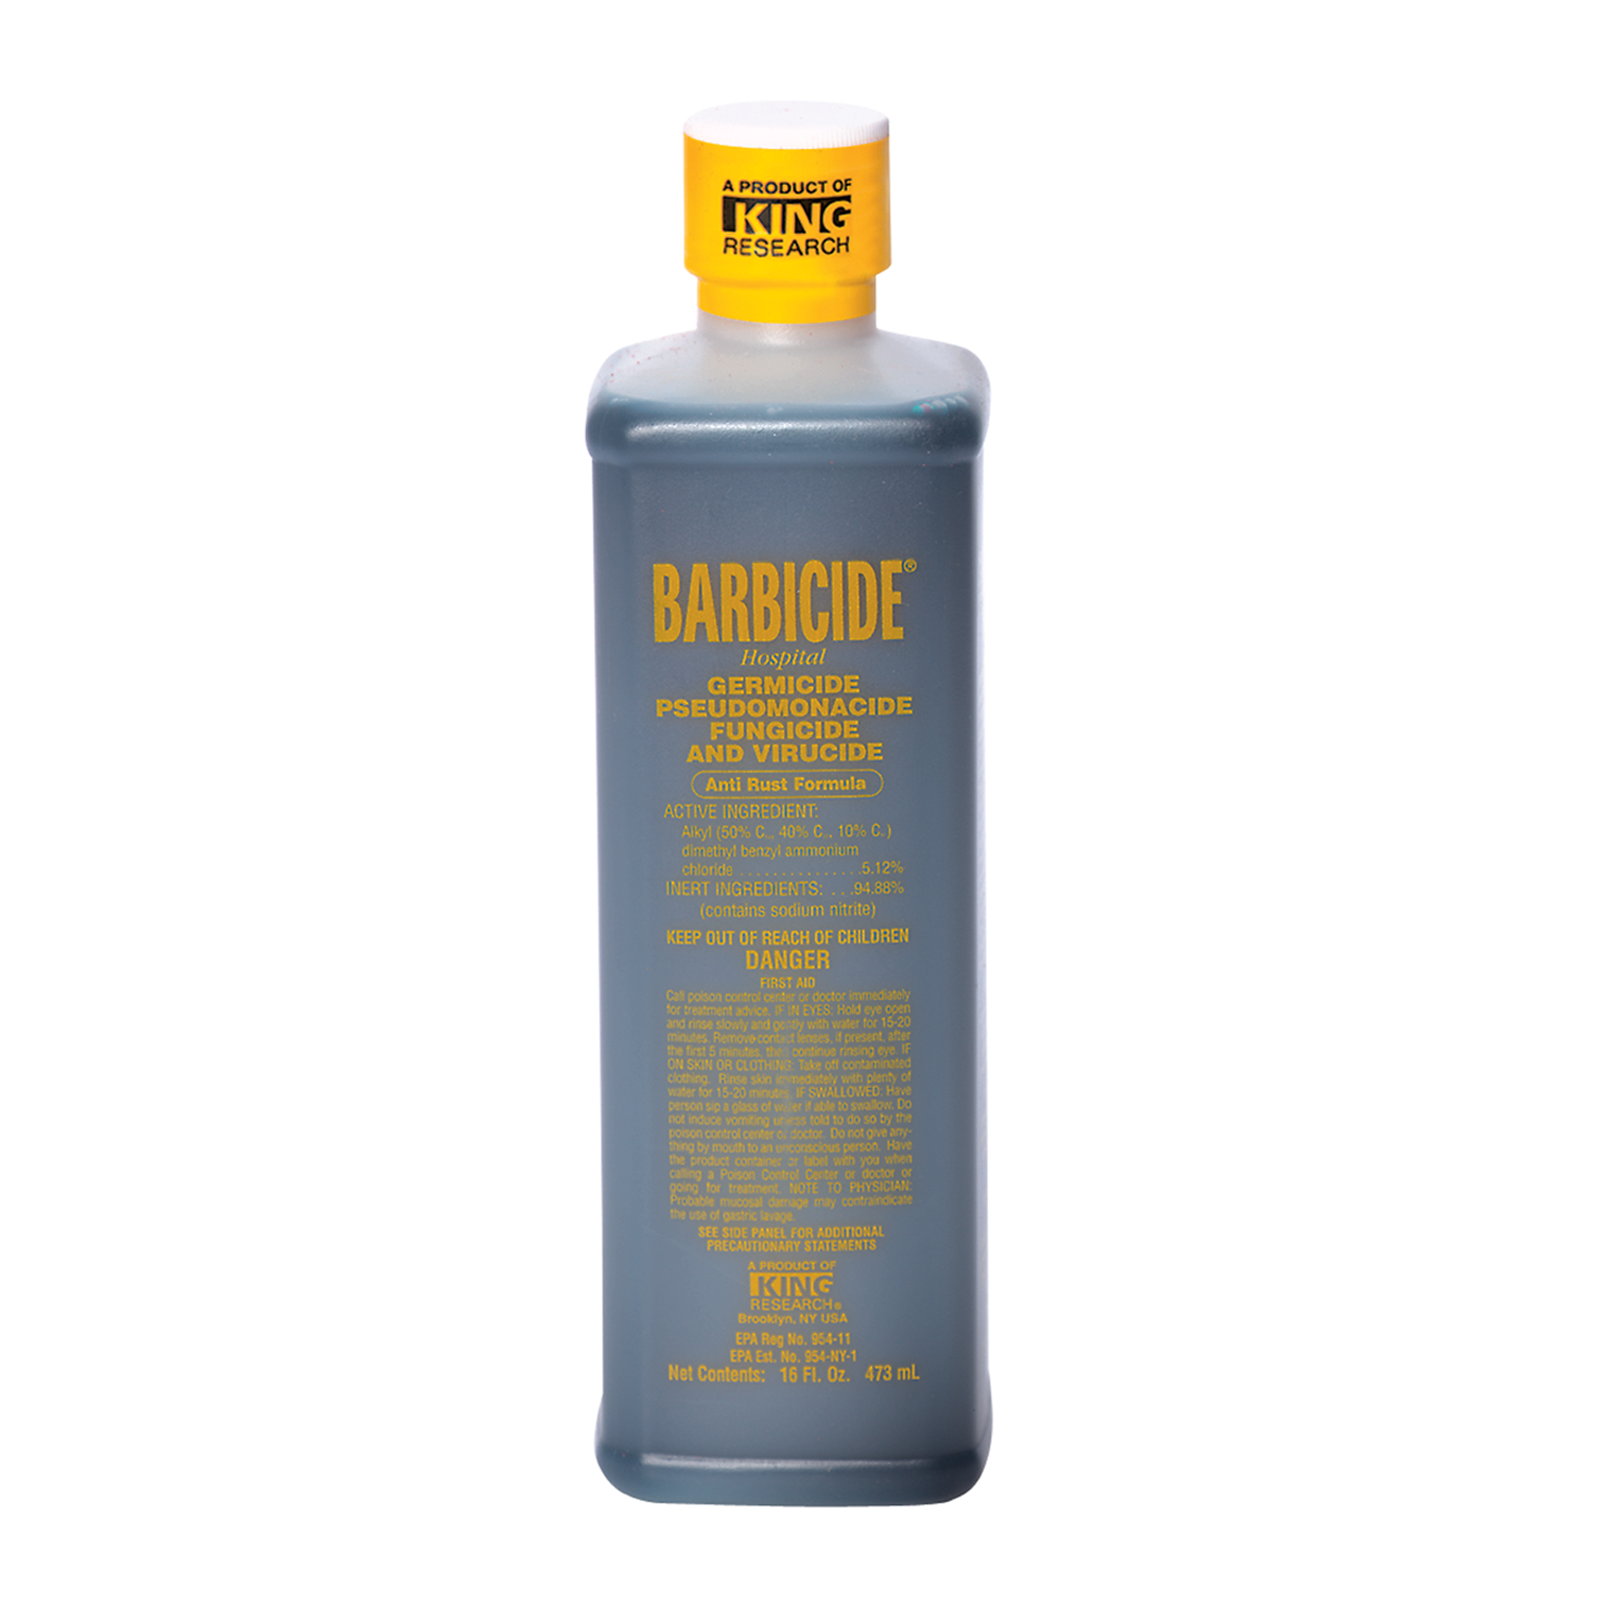 Barbicide Liquid - King Research Barbicide | CosmoProf